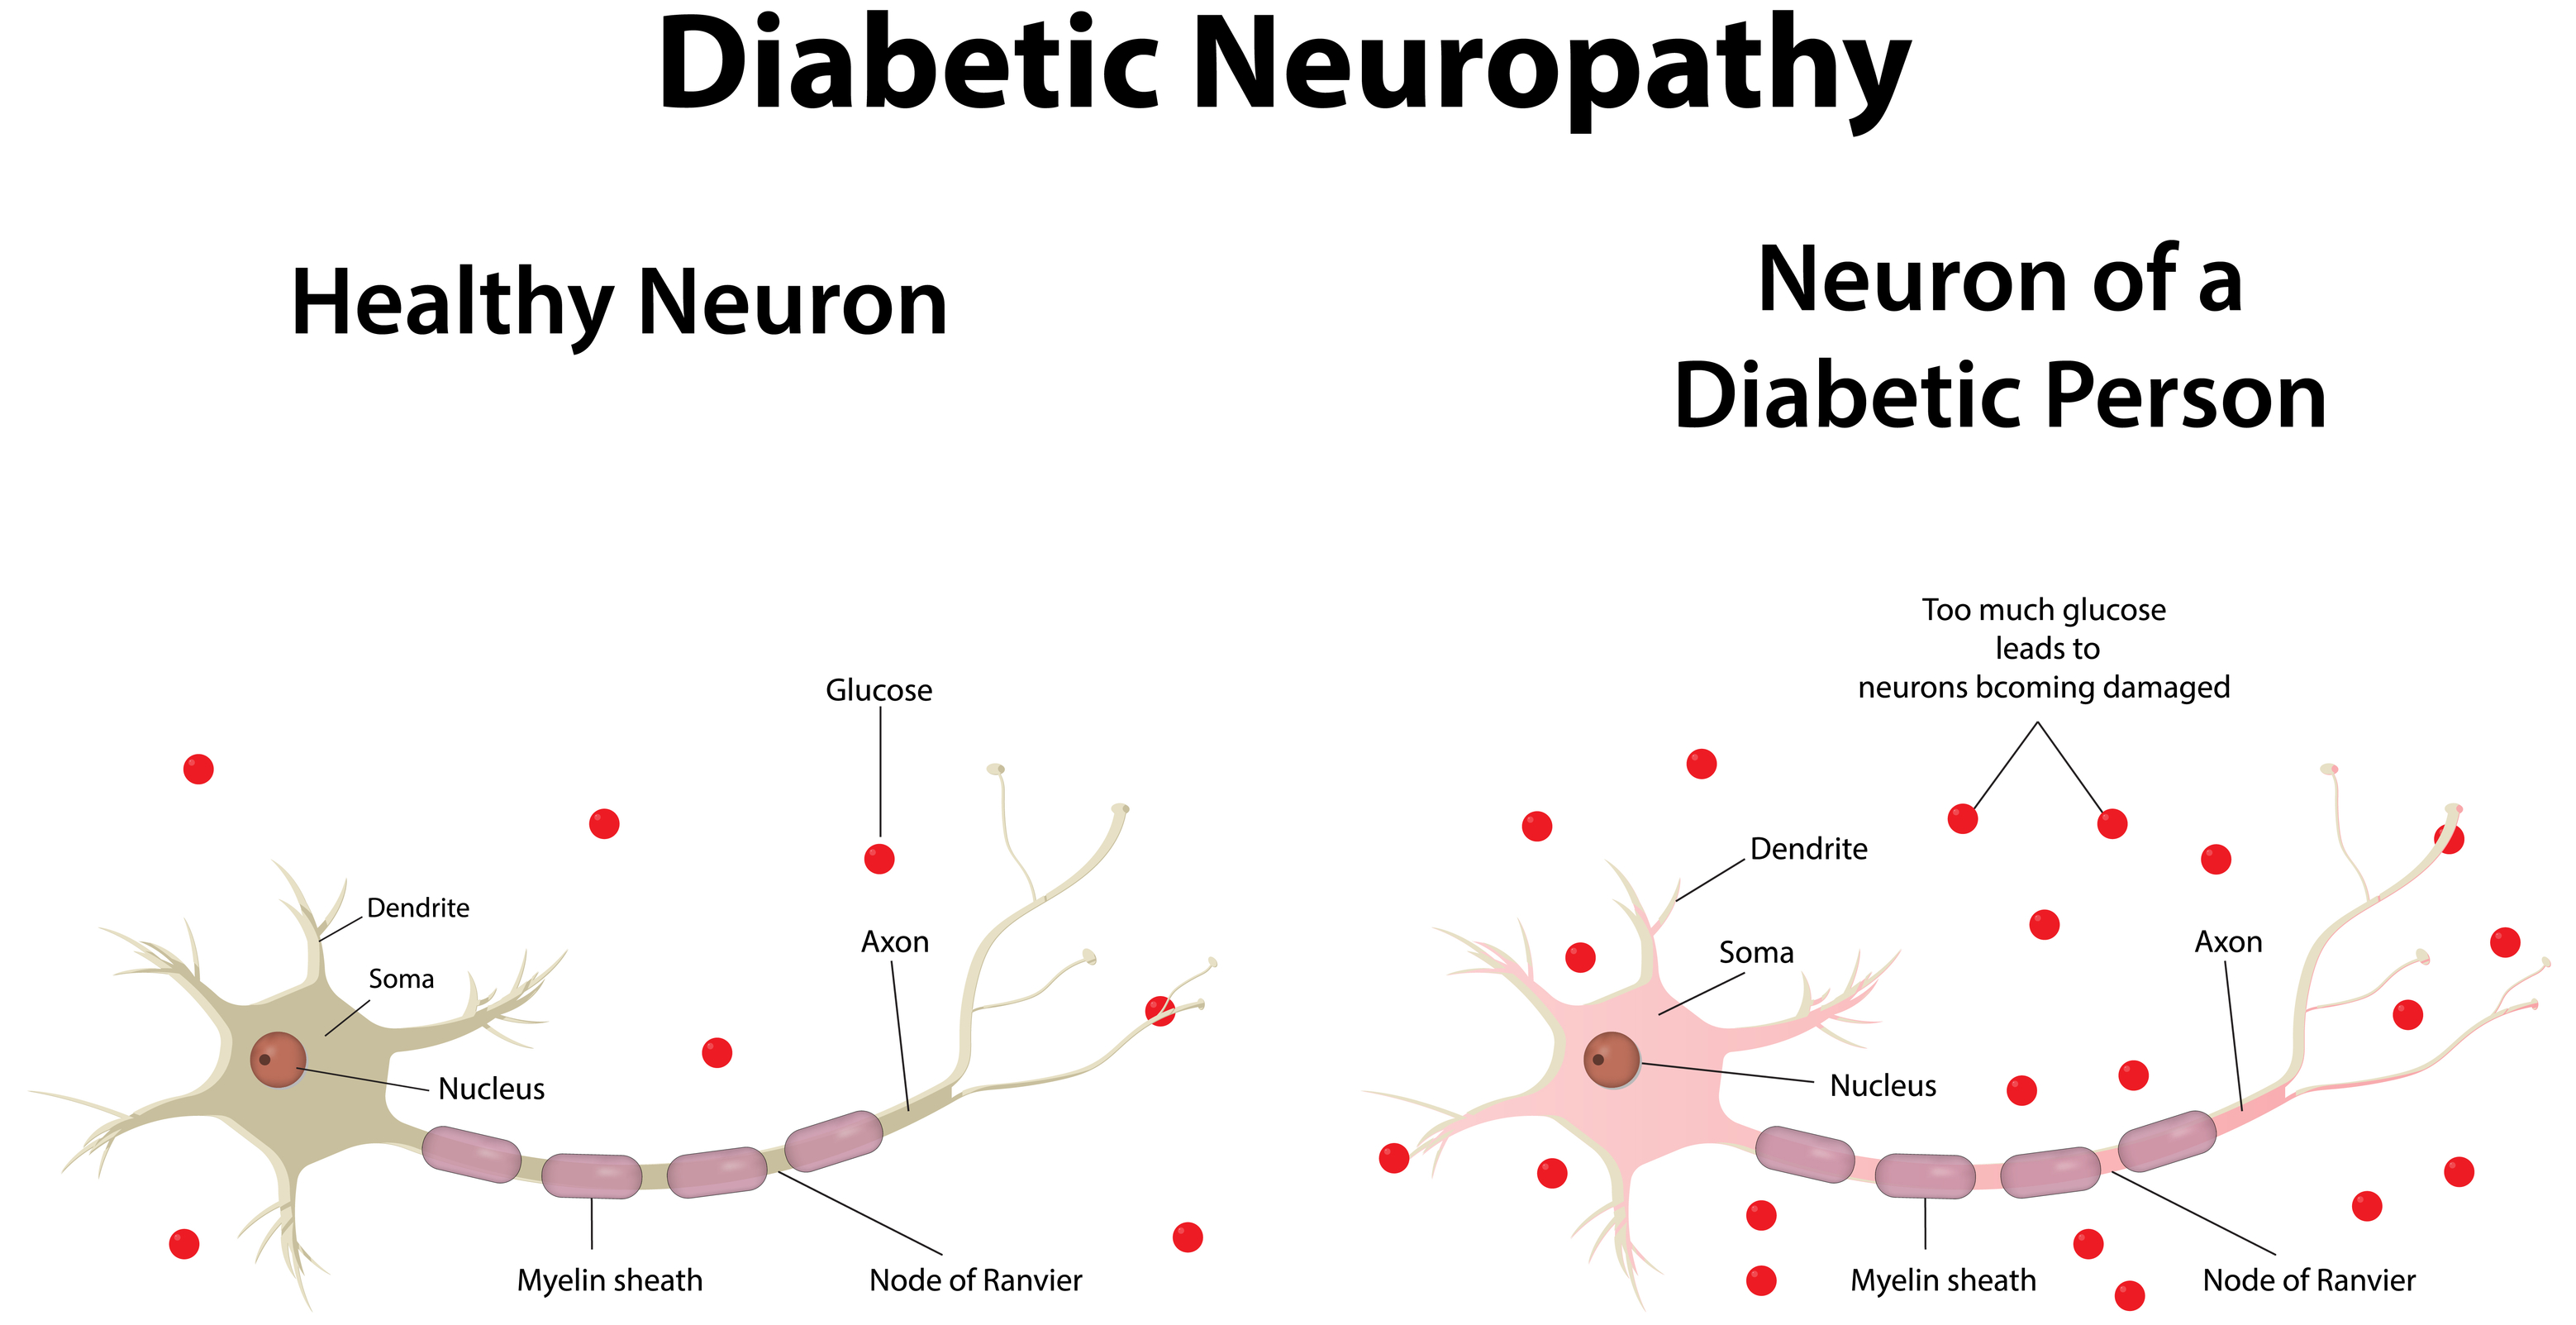 neuropathy pathways - Cannabis Help With Diabetes Treatment